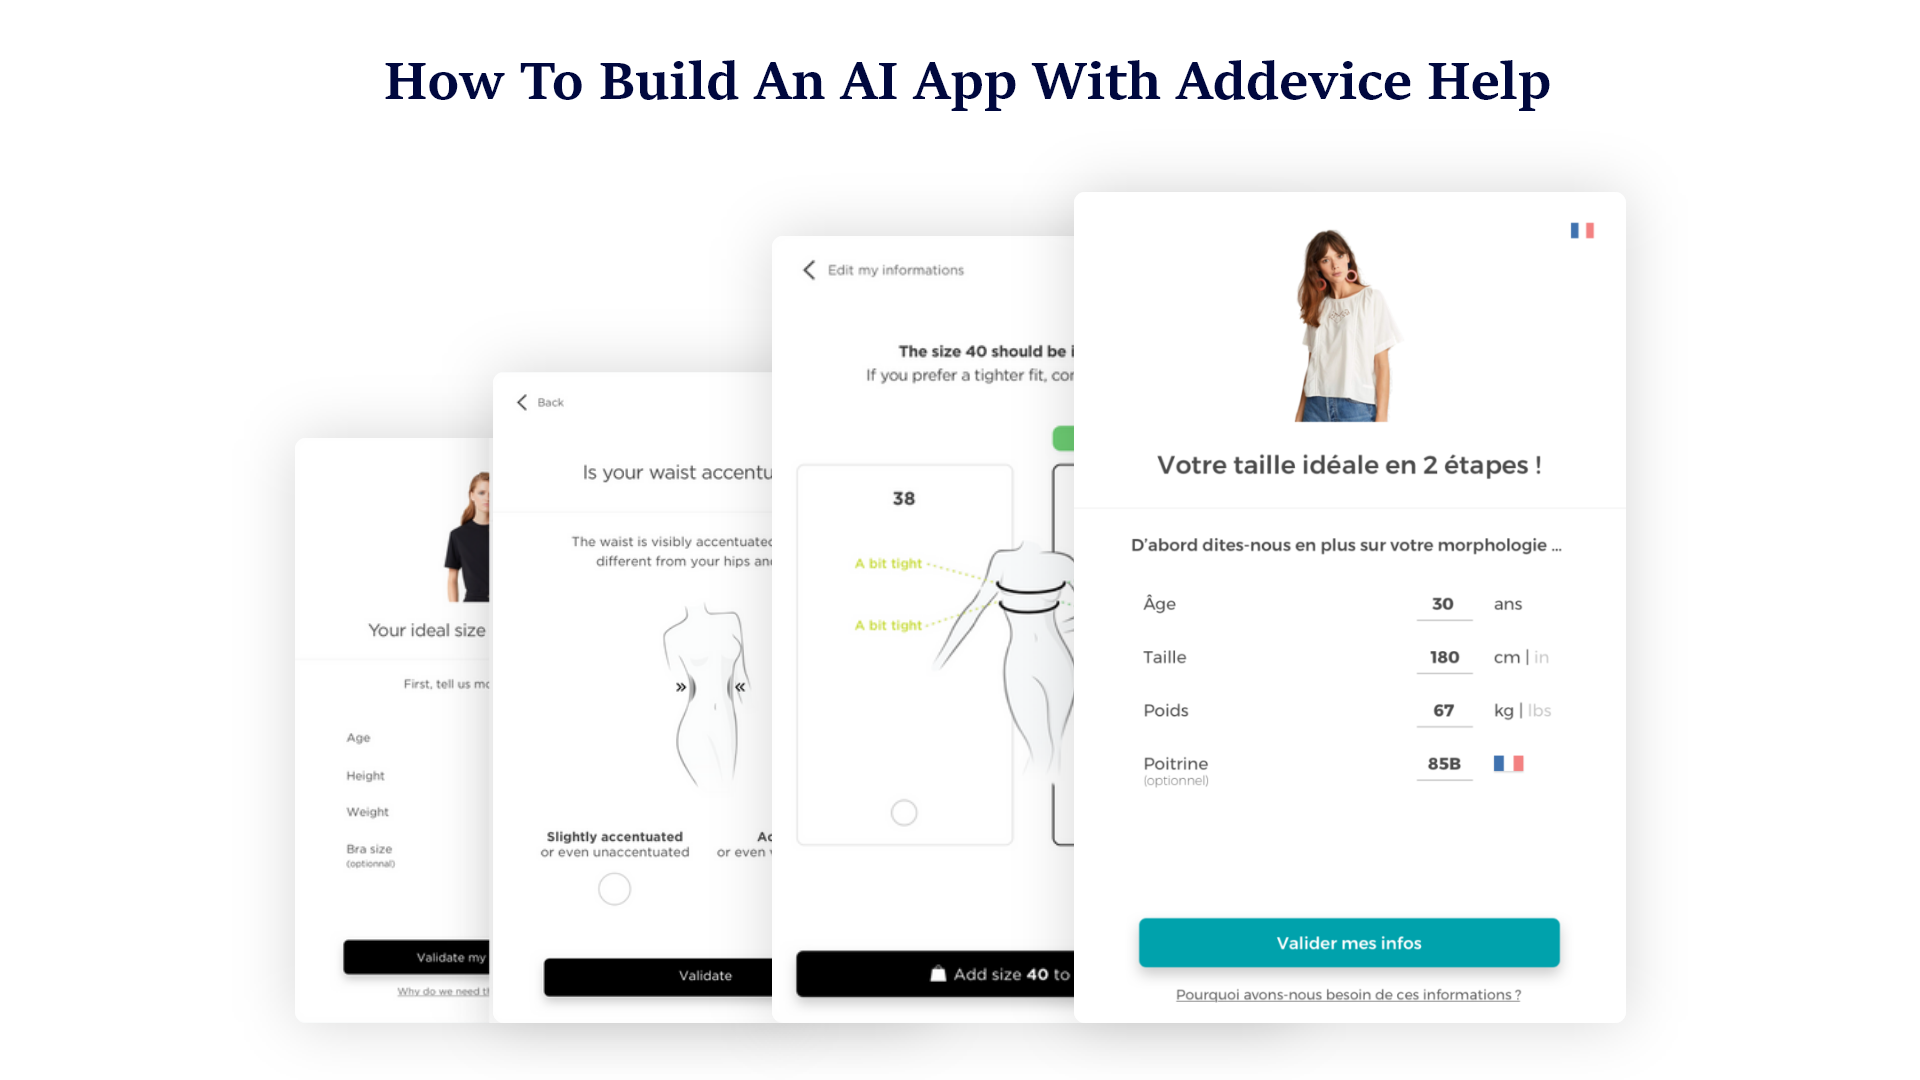 How to Build an AI App with Addevice Help